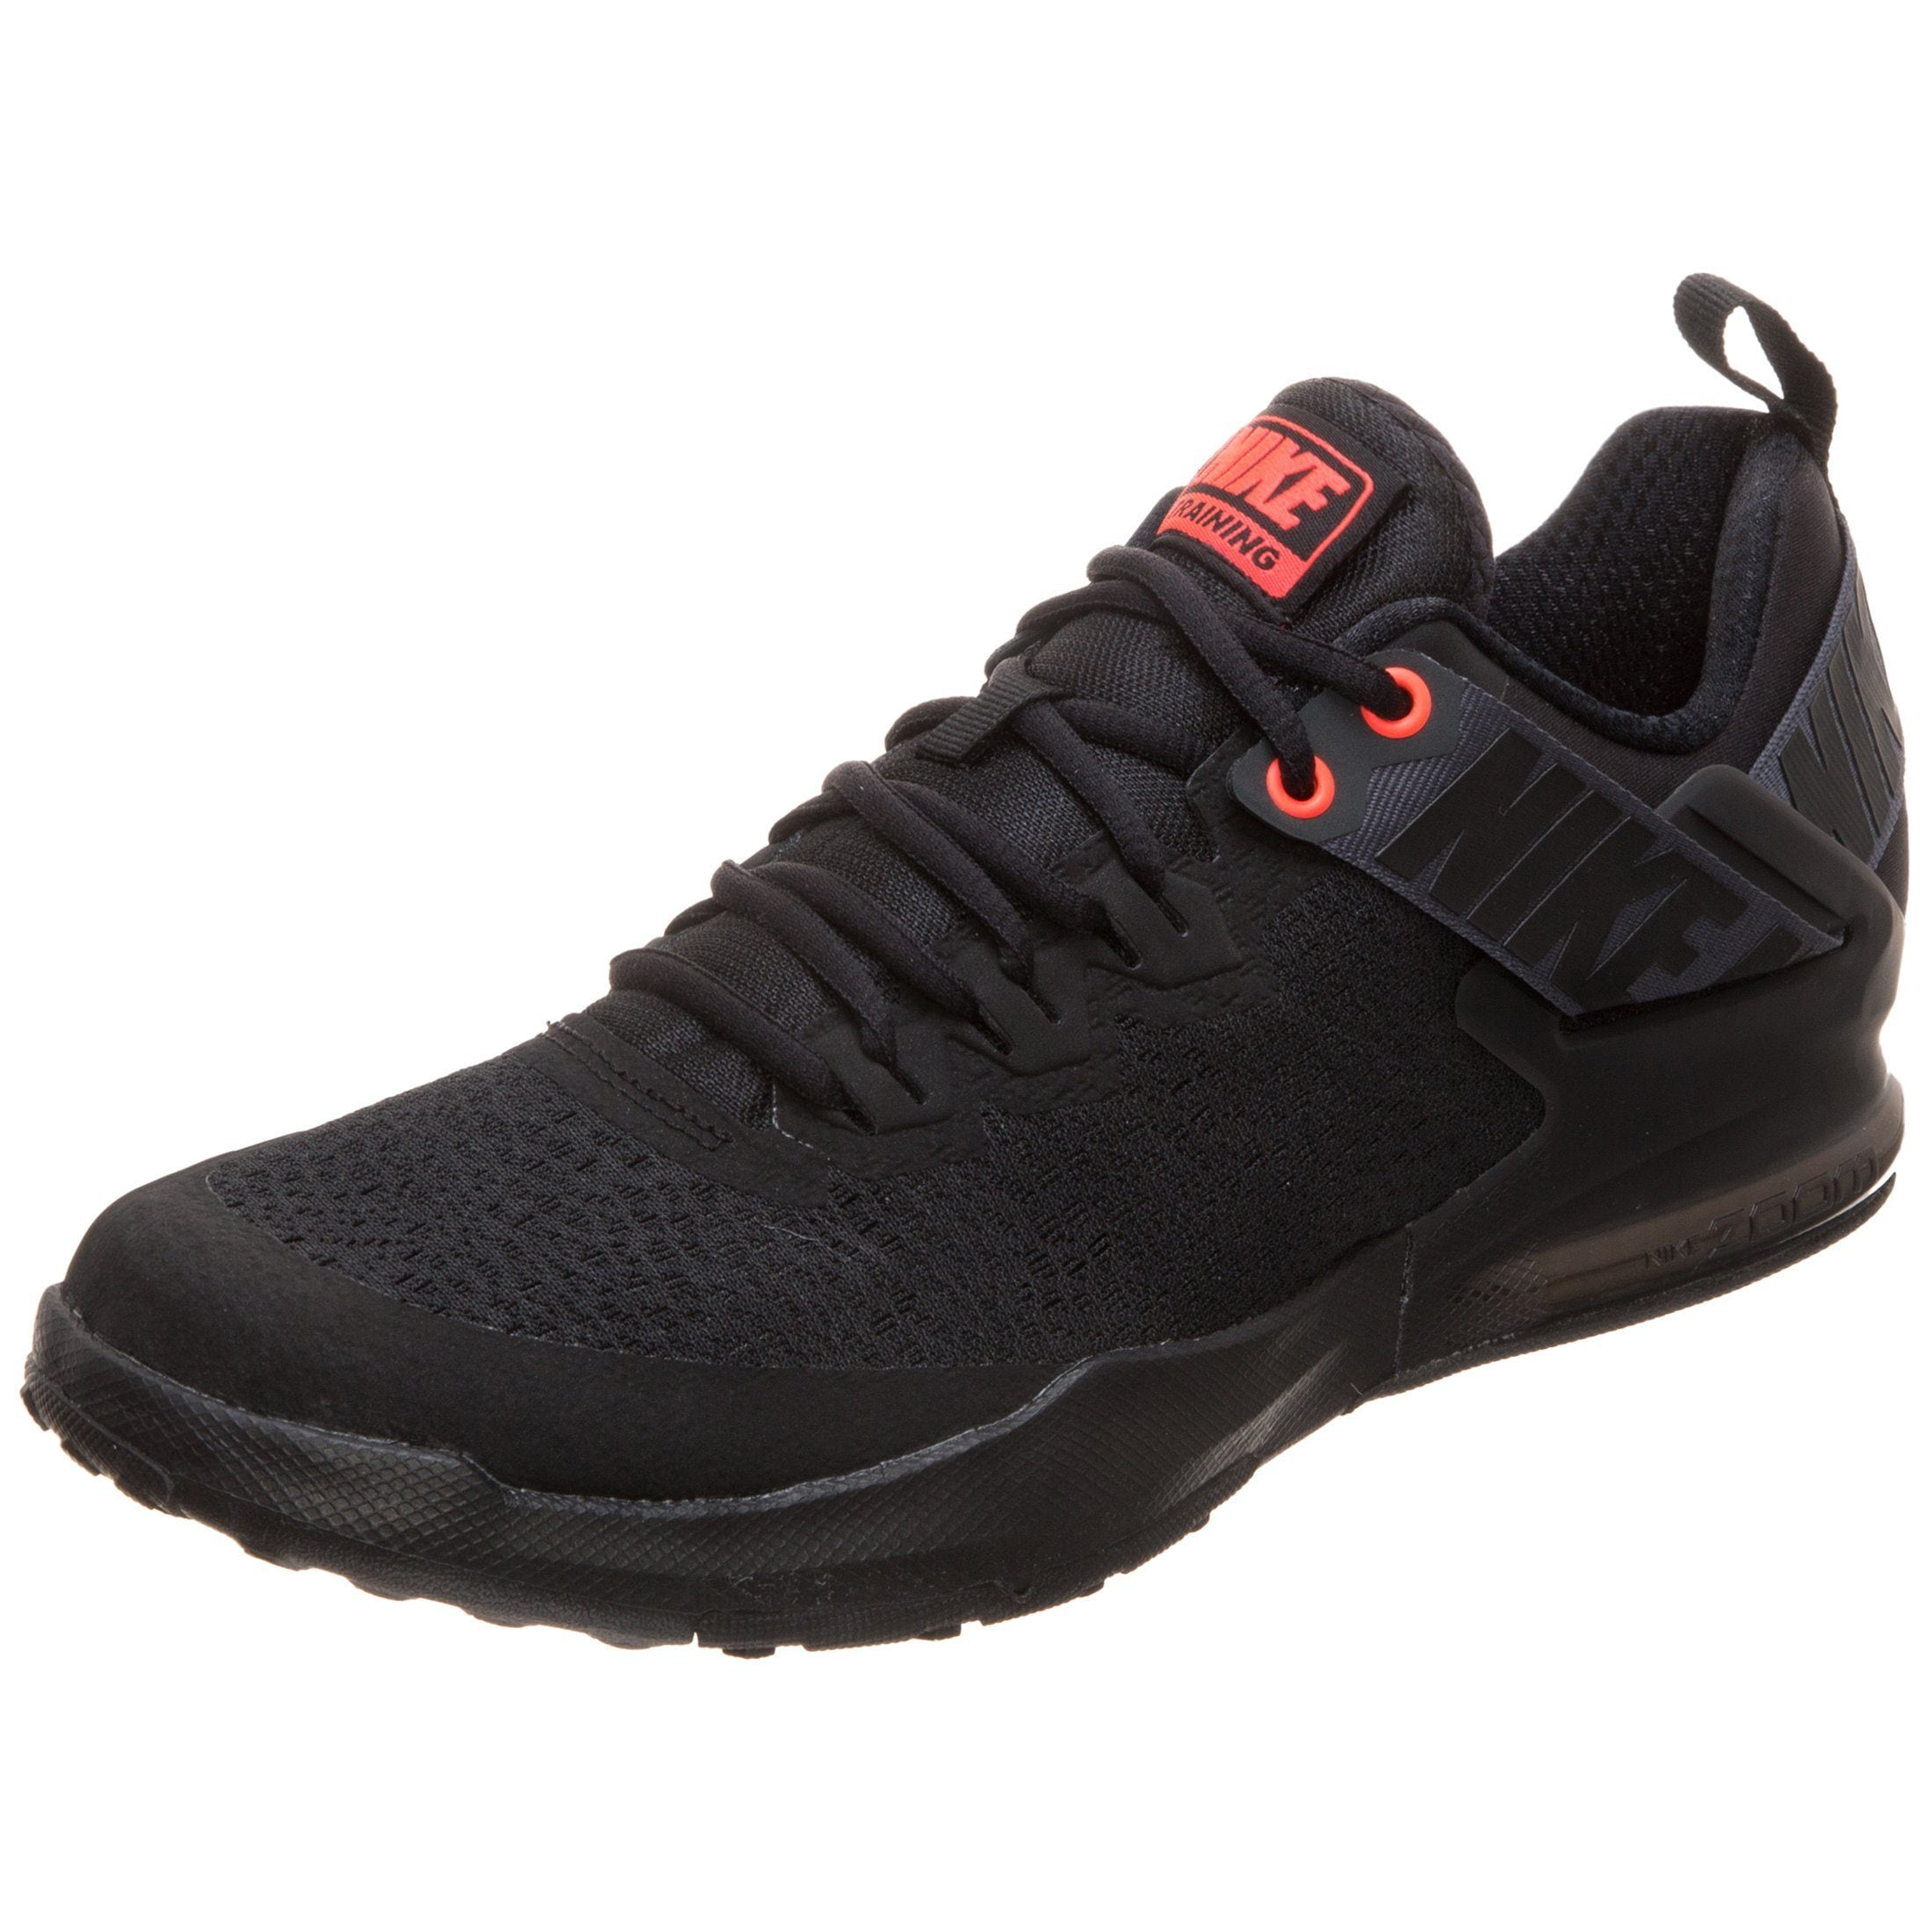 Nike Trainingsschuh Zoom Domination Tr 2